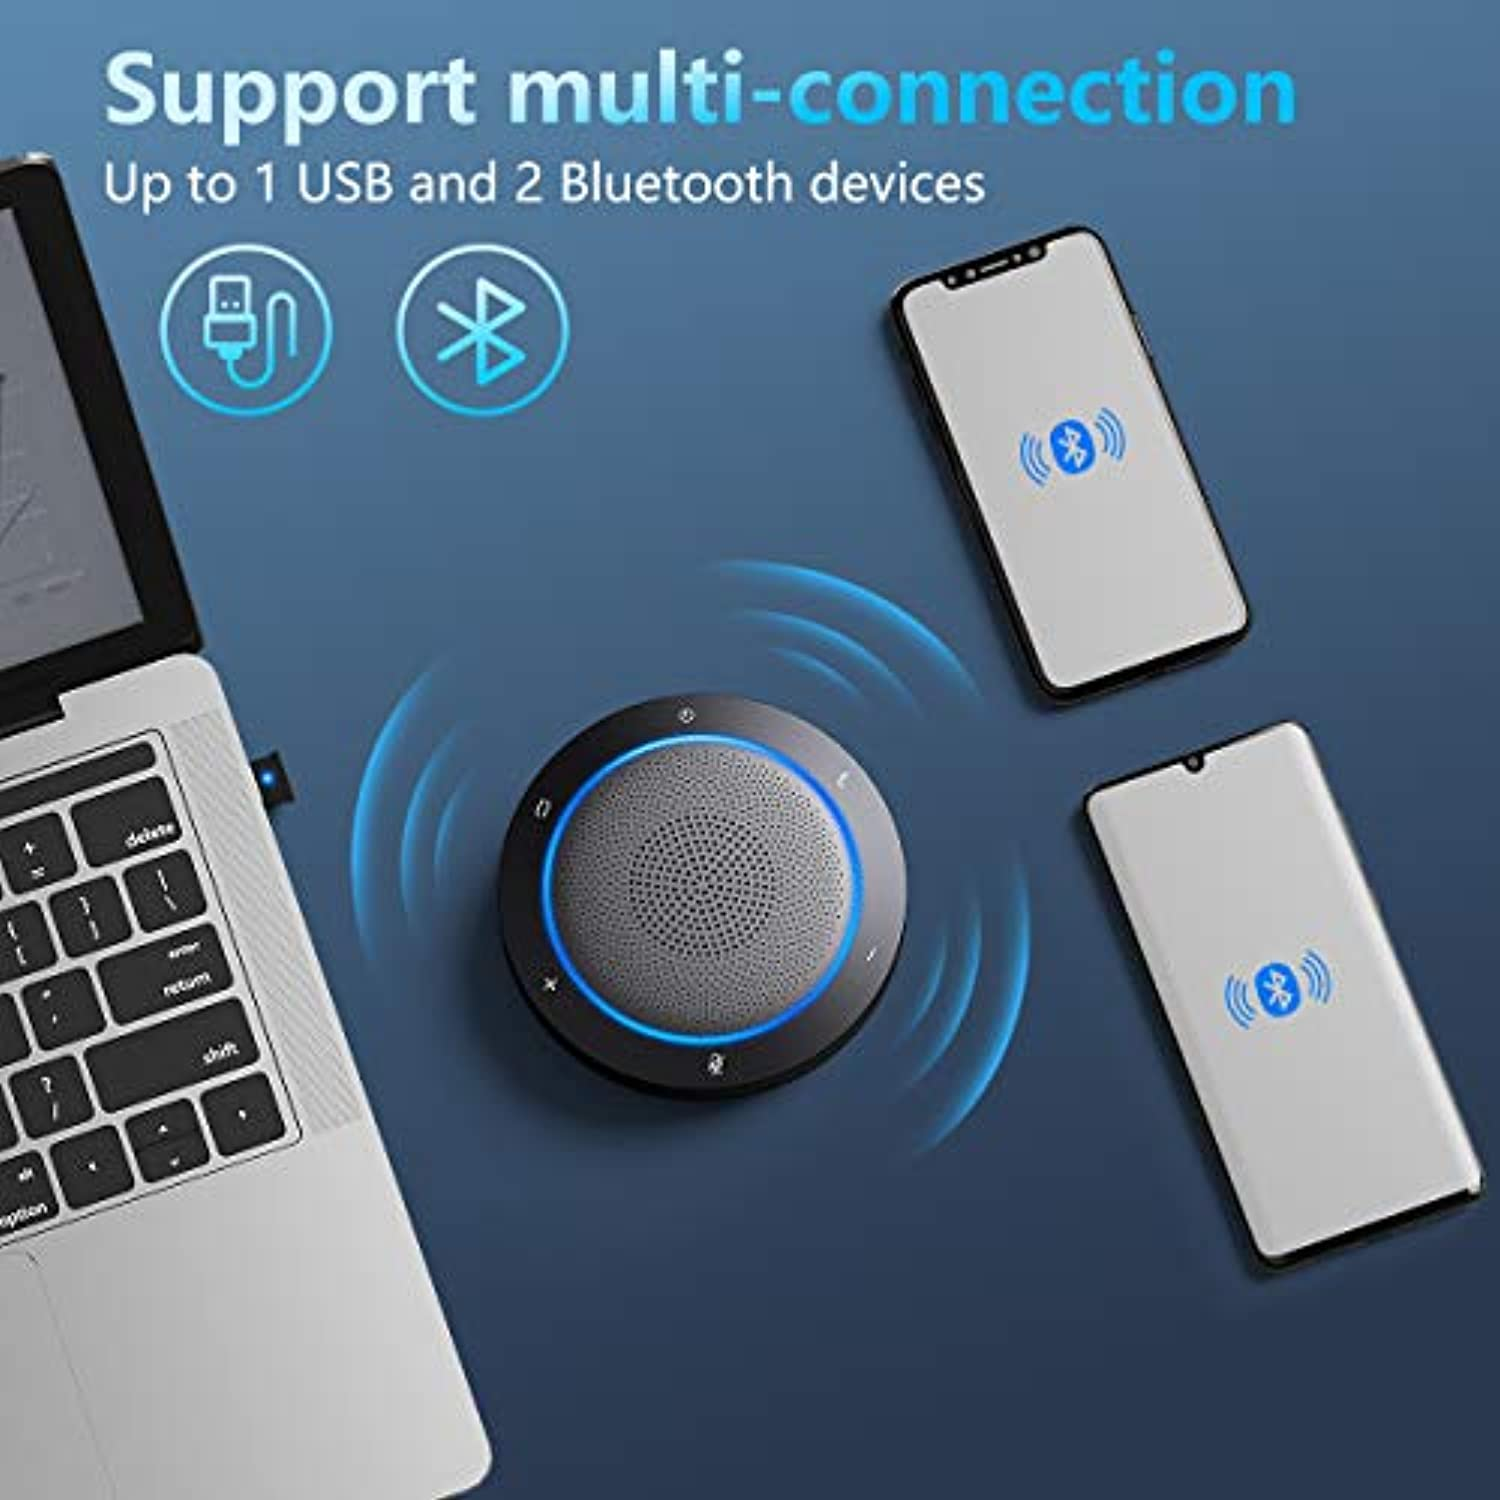 Conference Speakerphone with Noise Reduction Technology - Home Office - smrt-life.com